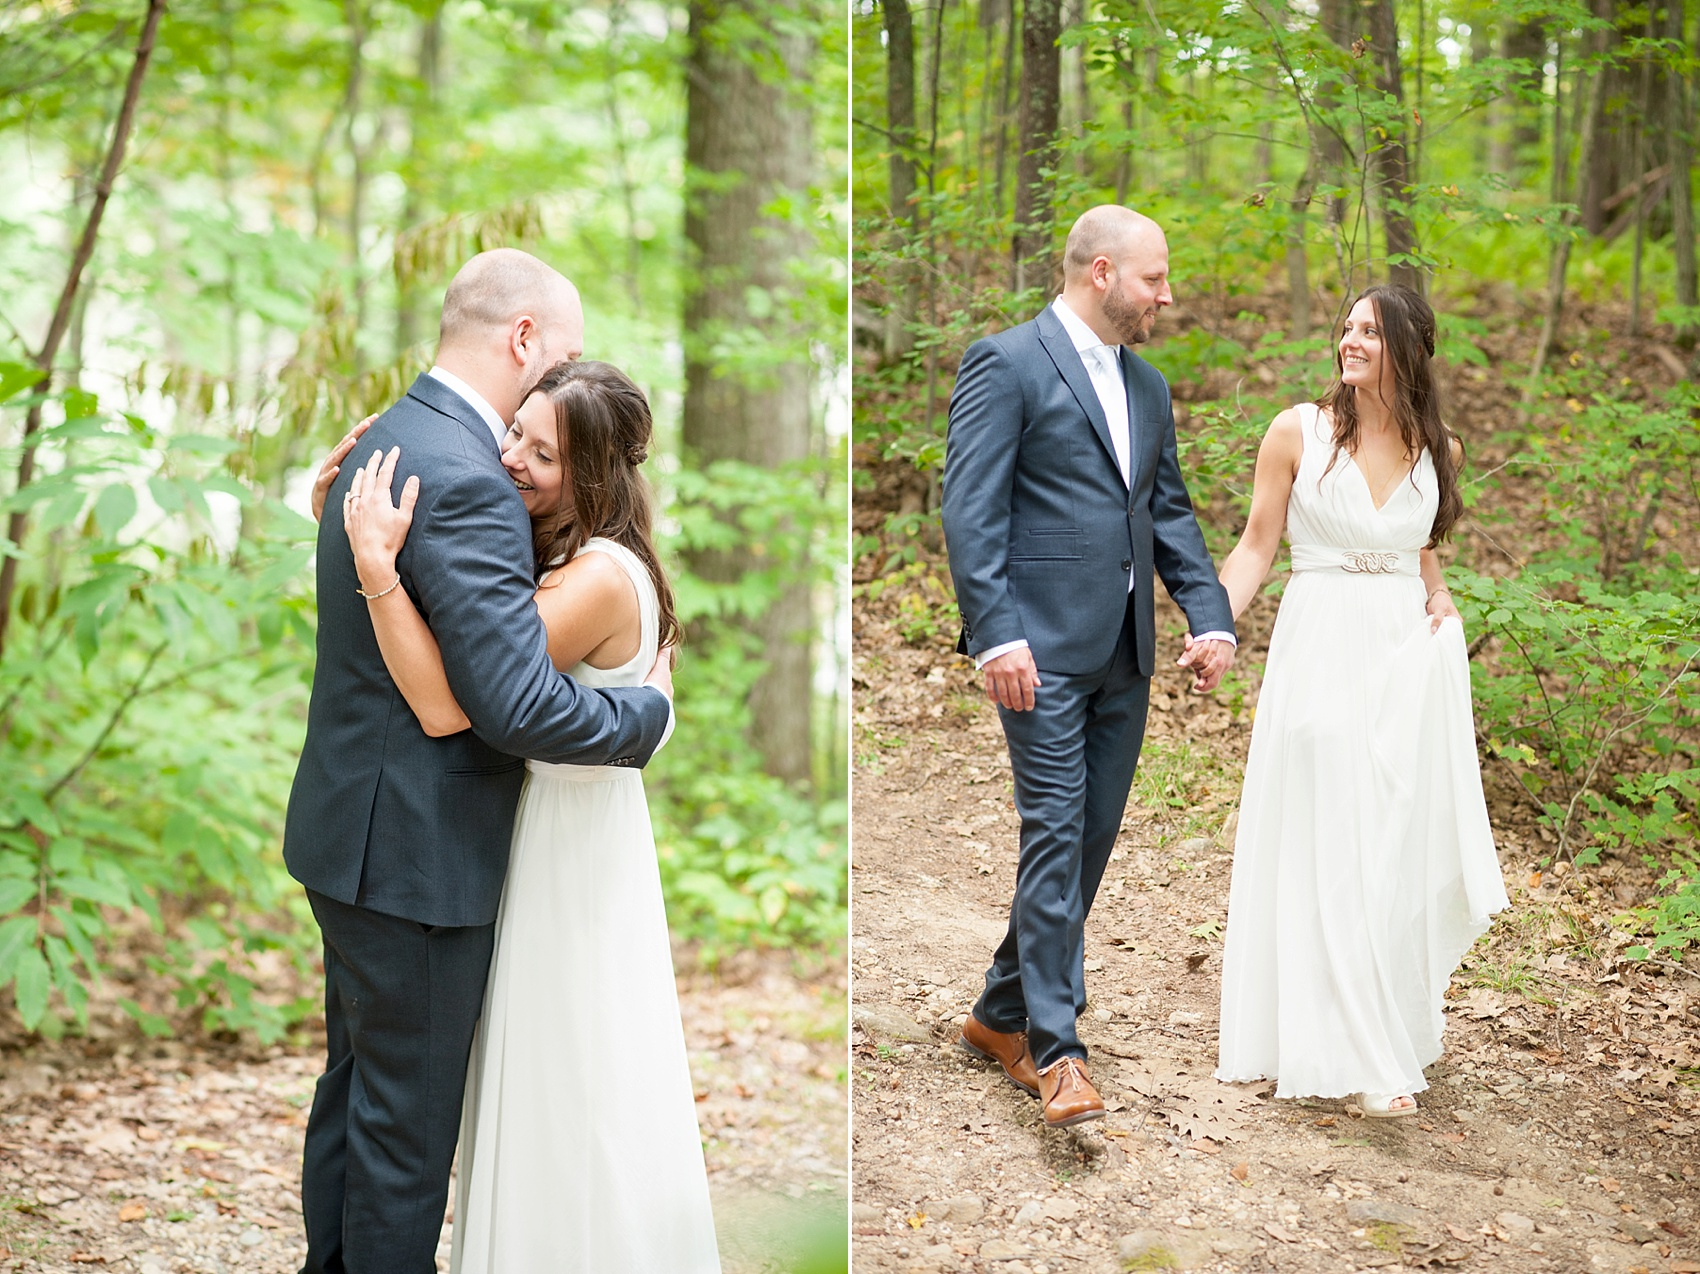 Bride and groom at their rustic Massachusetts Berkshires wedding at Camp Wa Wa Segowea. Photos by Mikkel Paige Photography, destination wedding photographer.